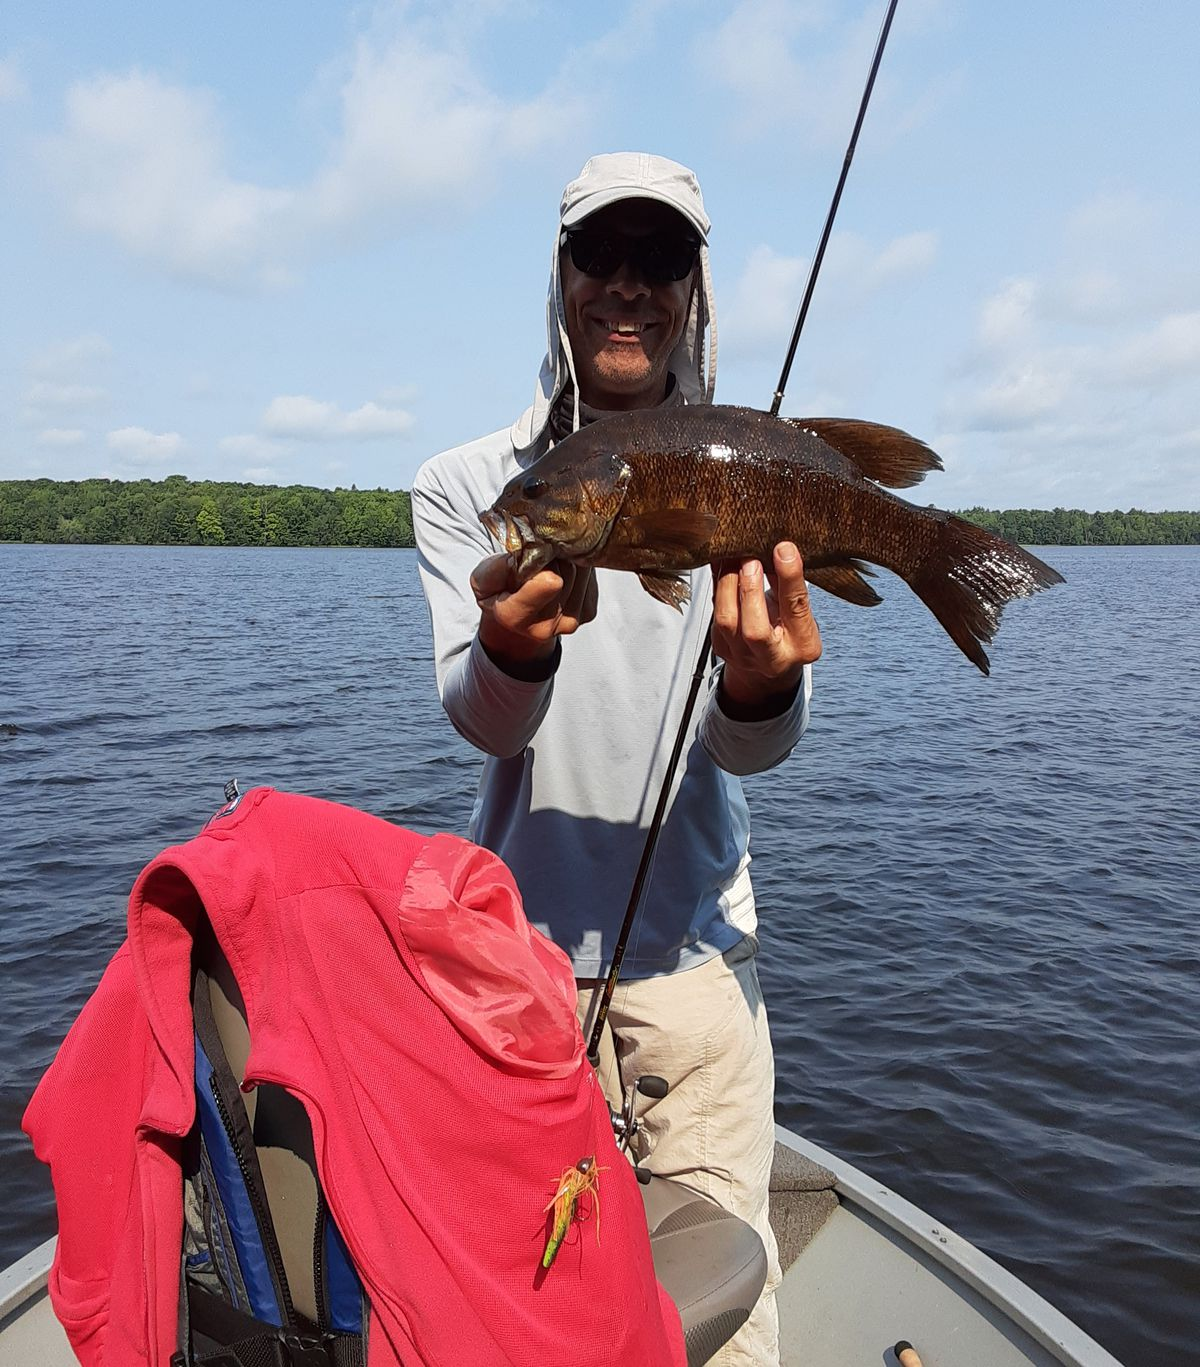 Rob Abouchar with a Wisconsin River smallmouth bass. Provided photo